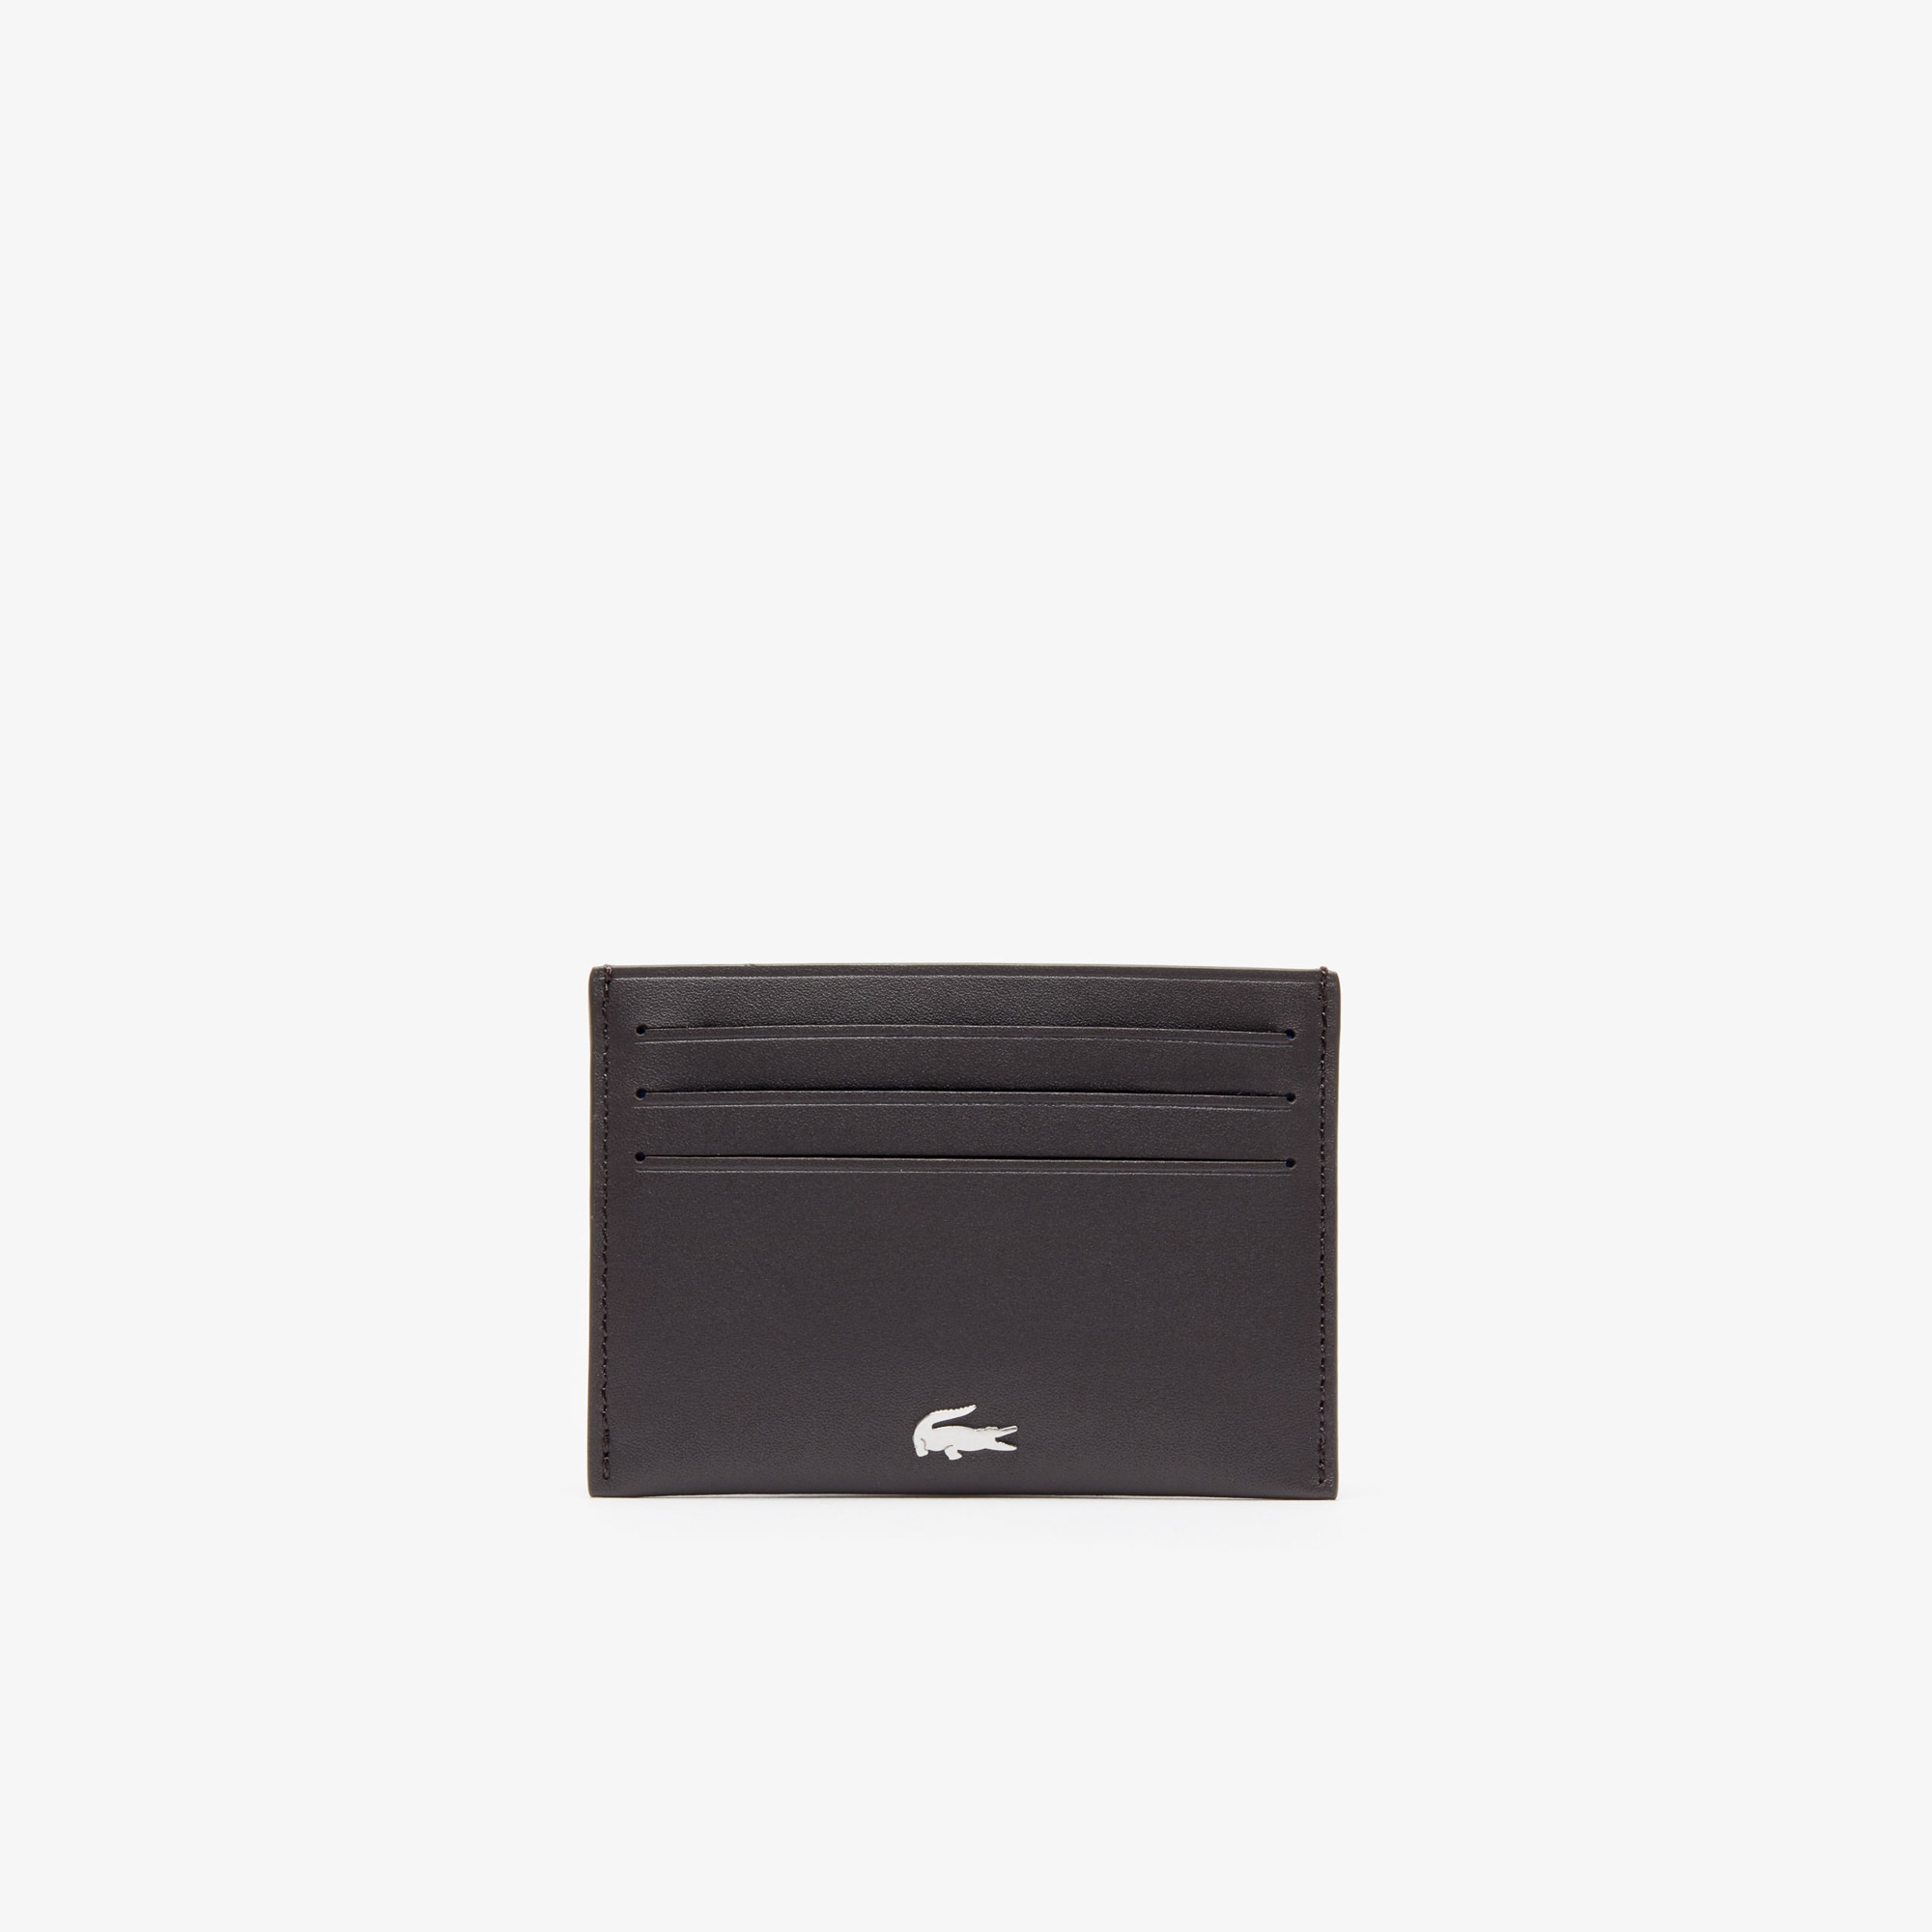 Men's FG credit card holder in leather